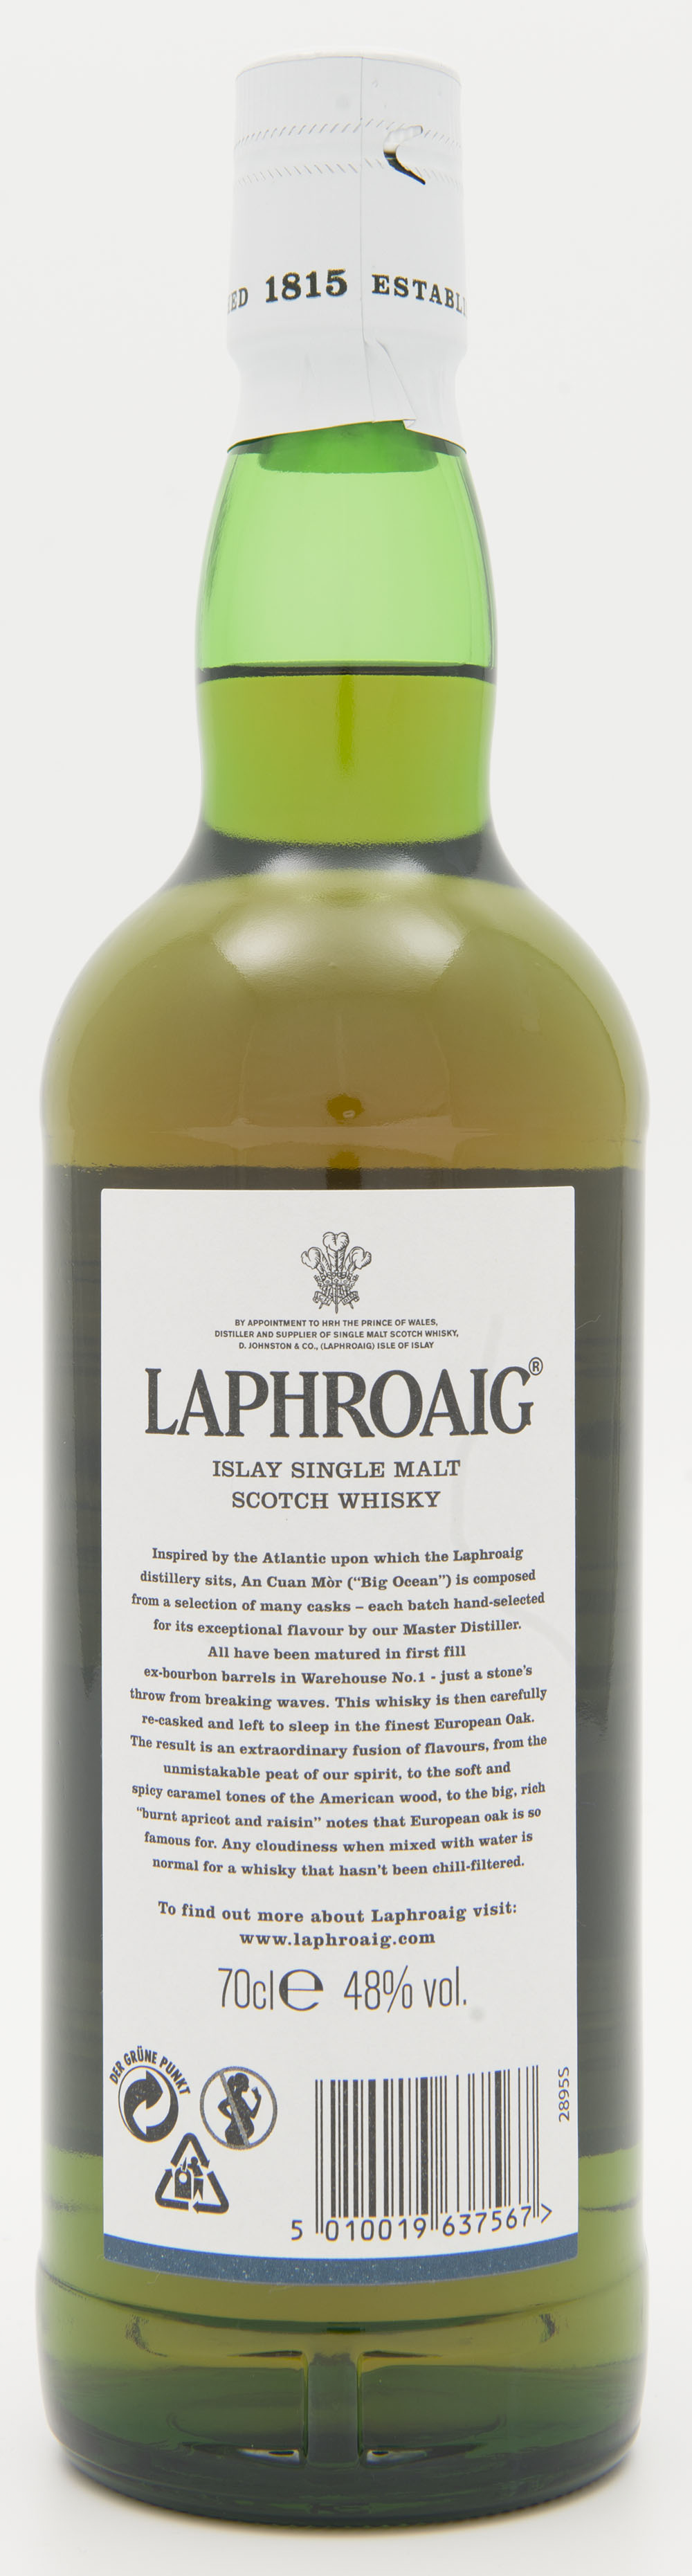 Billede: DSC_3612 Laphroaig - An Cuan Mor - bottle back.jpg